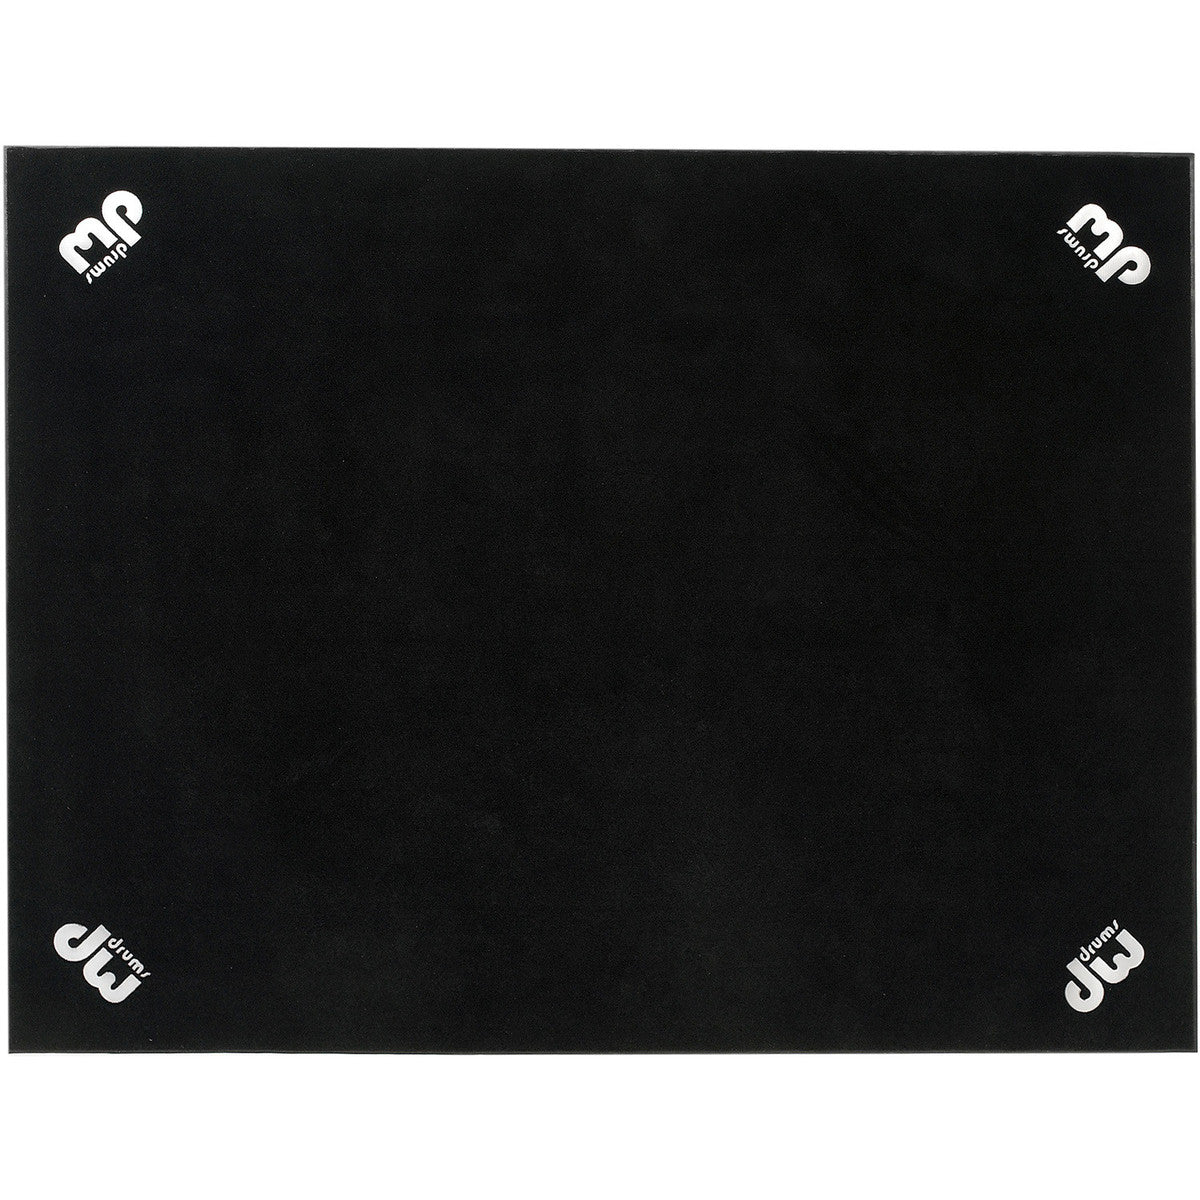 DW 5' x 7' Large DW Drum Rug, Black